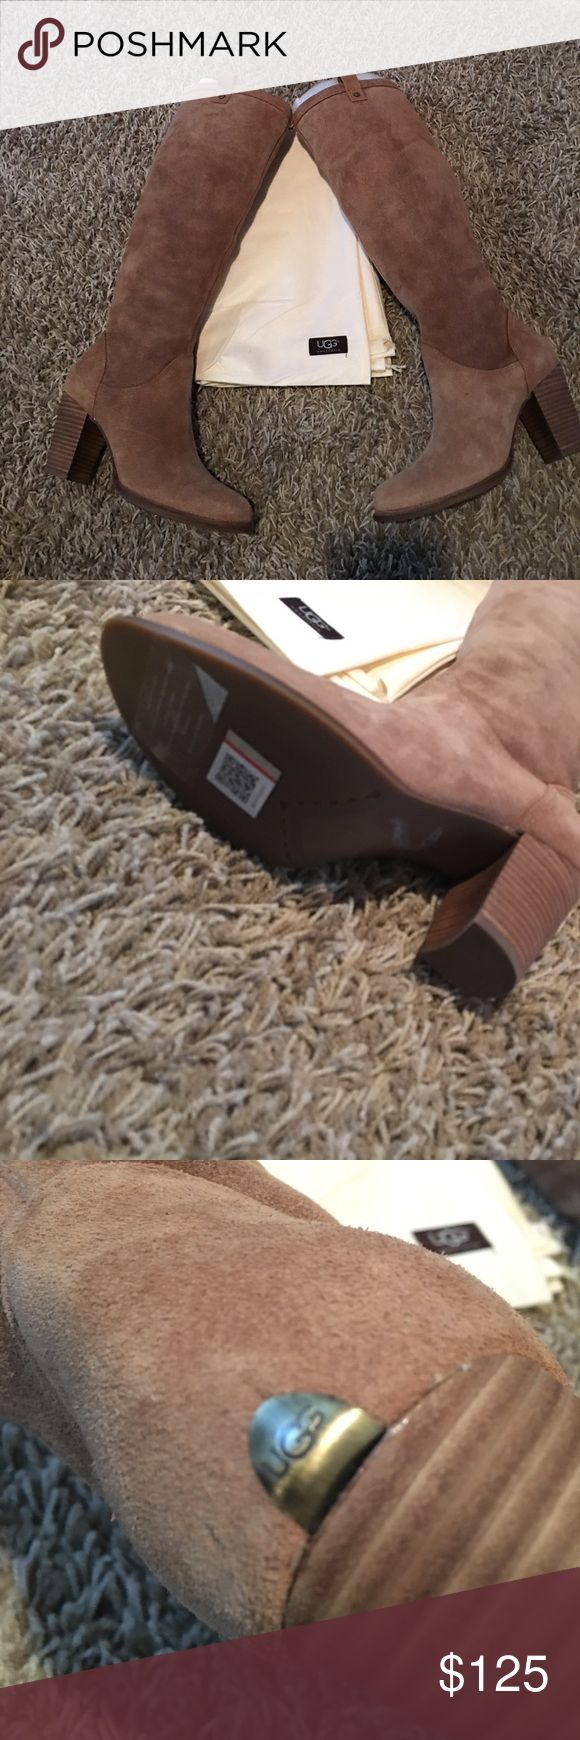 UGG Ava long boots New in box UGG Ava long boots. The color is chestnut. Comes with dust cover. Authentic. A must have! UGG Shoes Heeled Boots